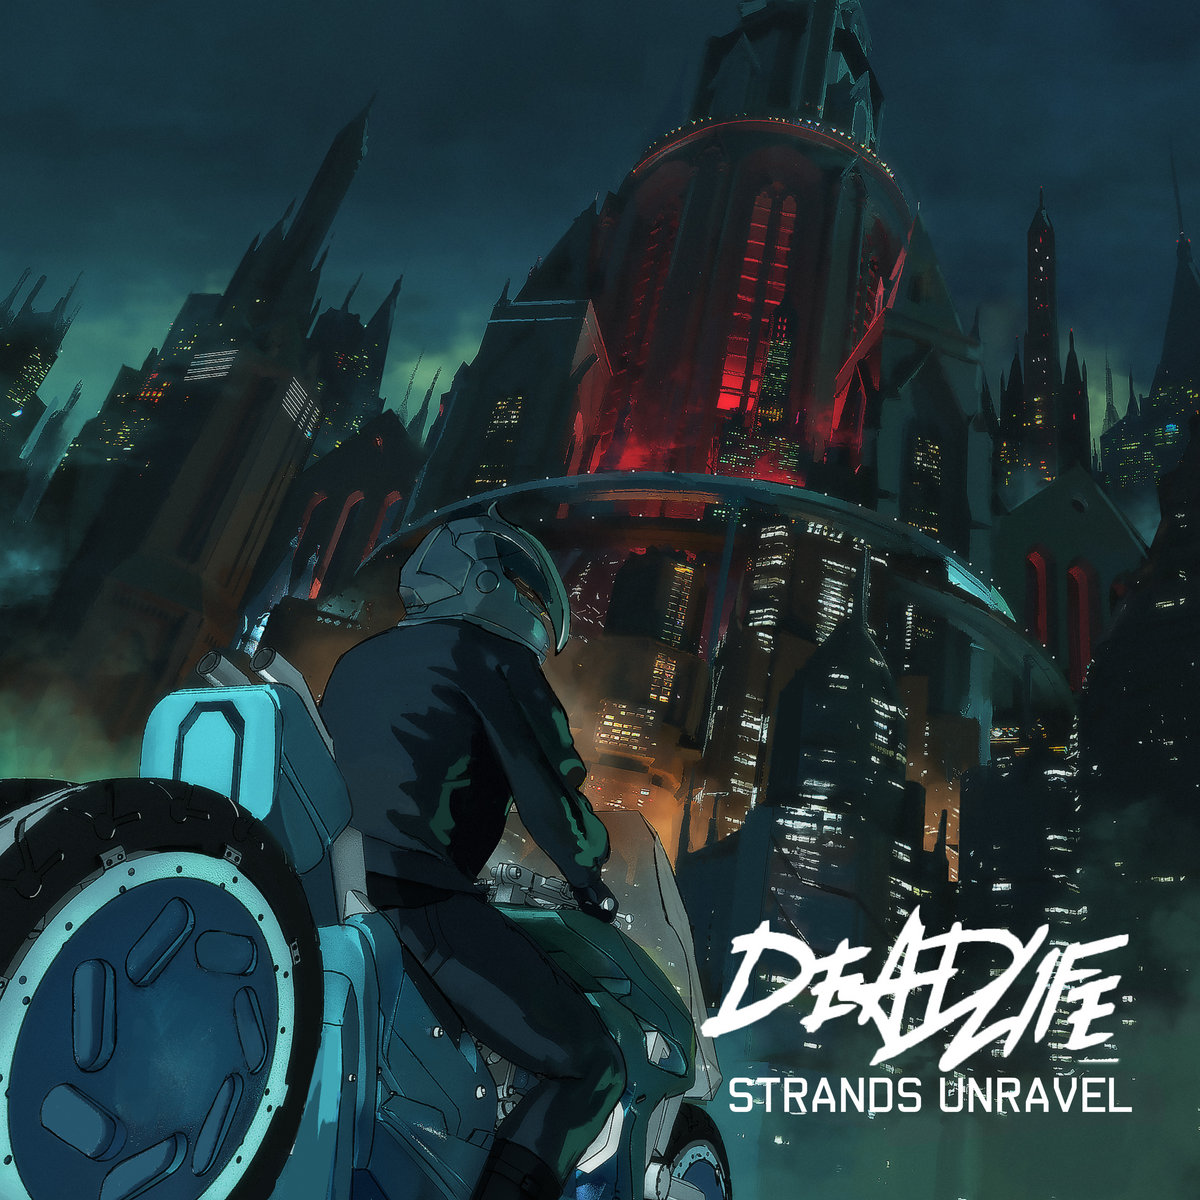 a0722695938 10 - DEADLIFE - Strands Unravel